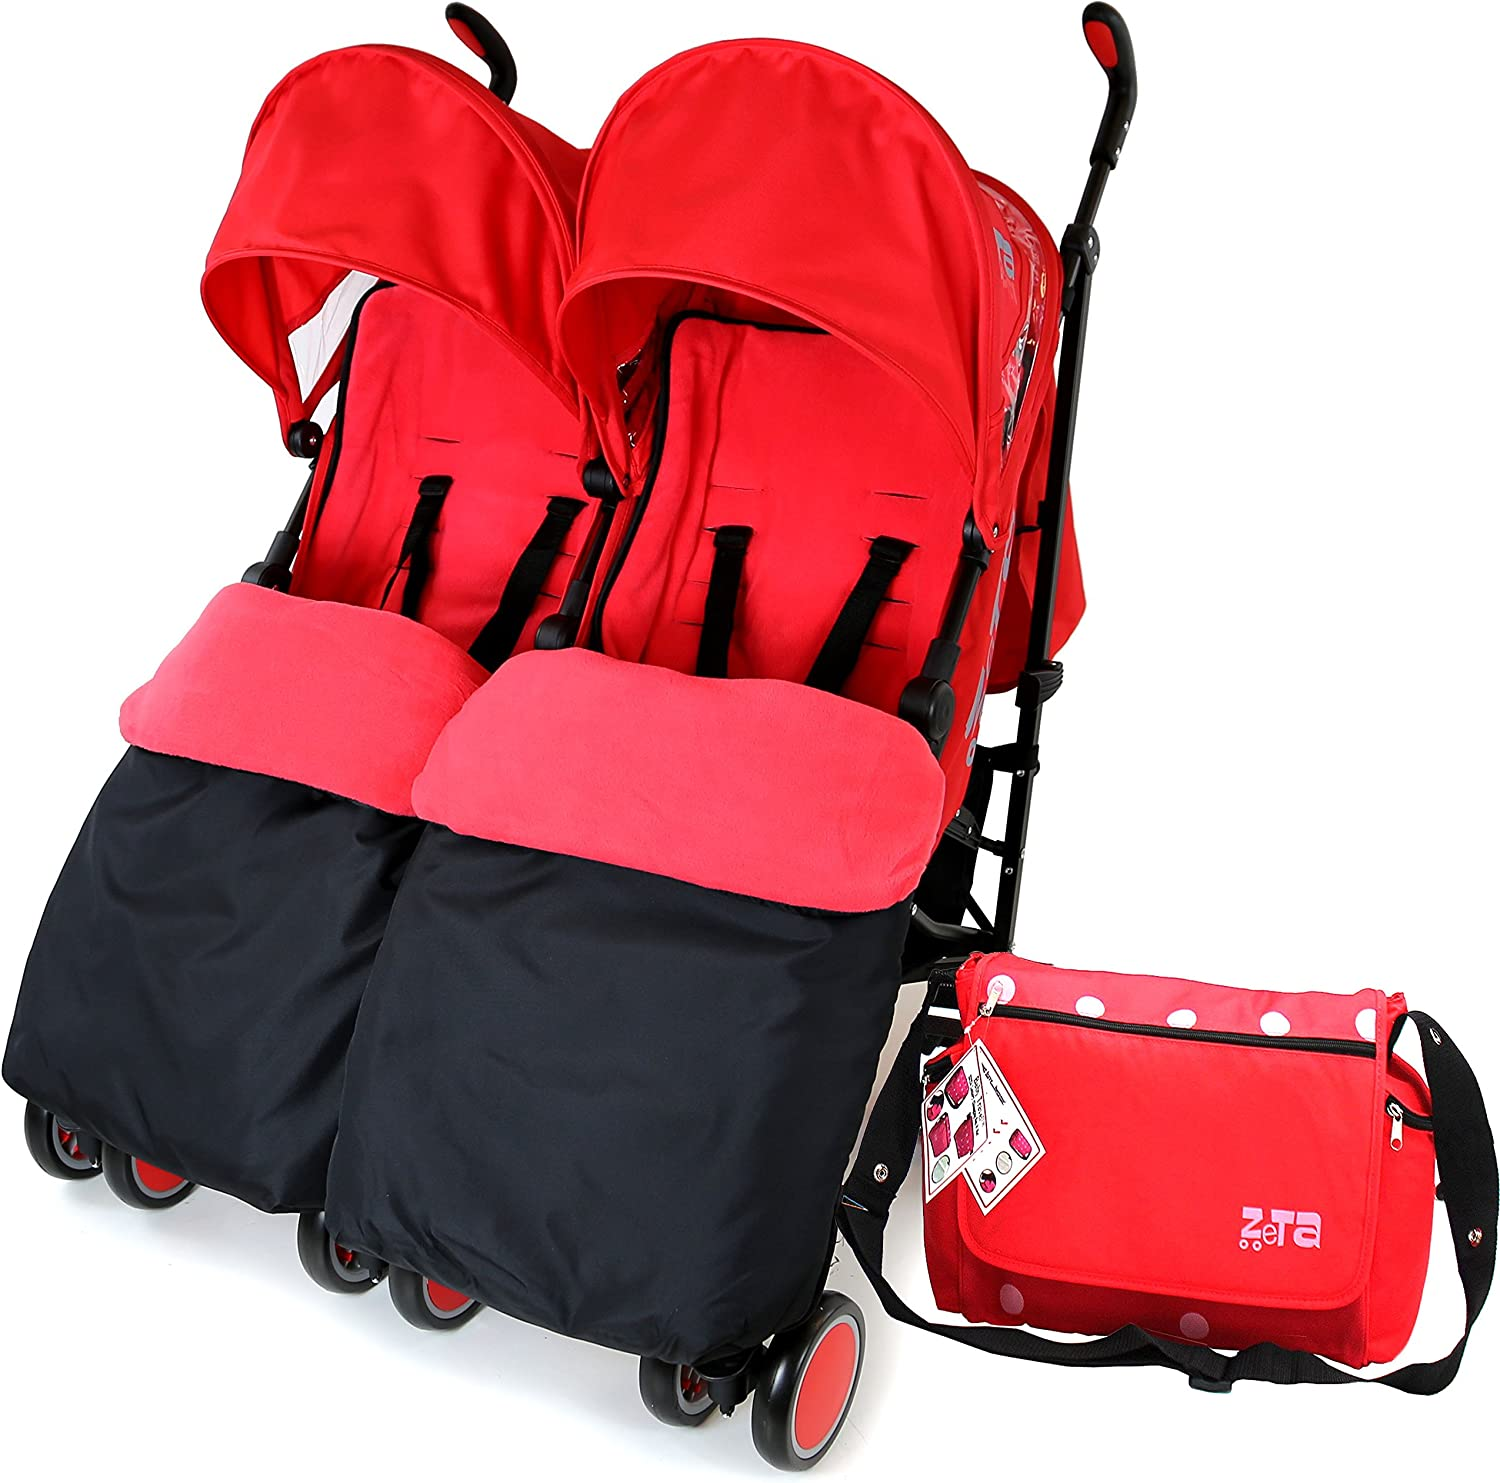 Warm Red Double Stroller Complete with FootMuffs and Bag Zeta Citi Twin Stroller Buggy Pushchair